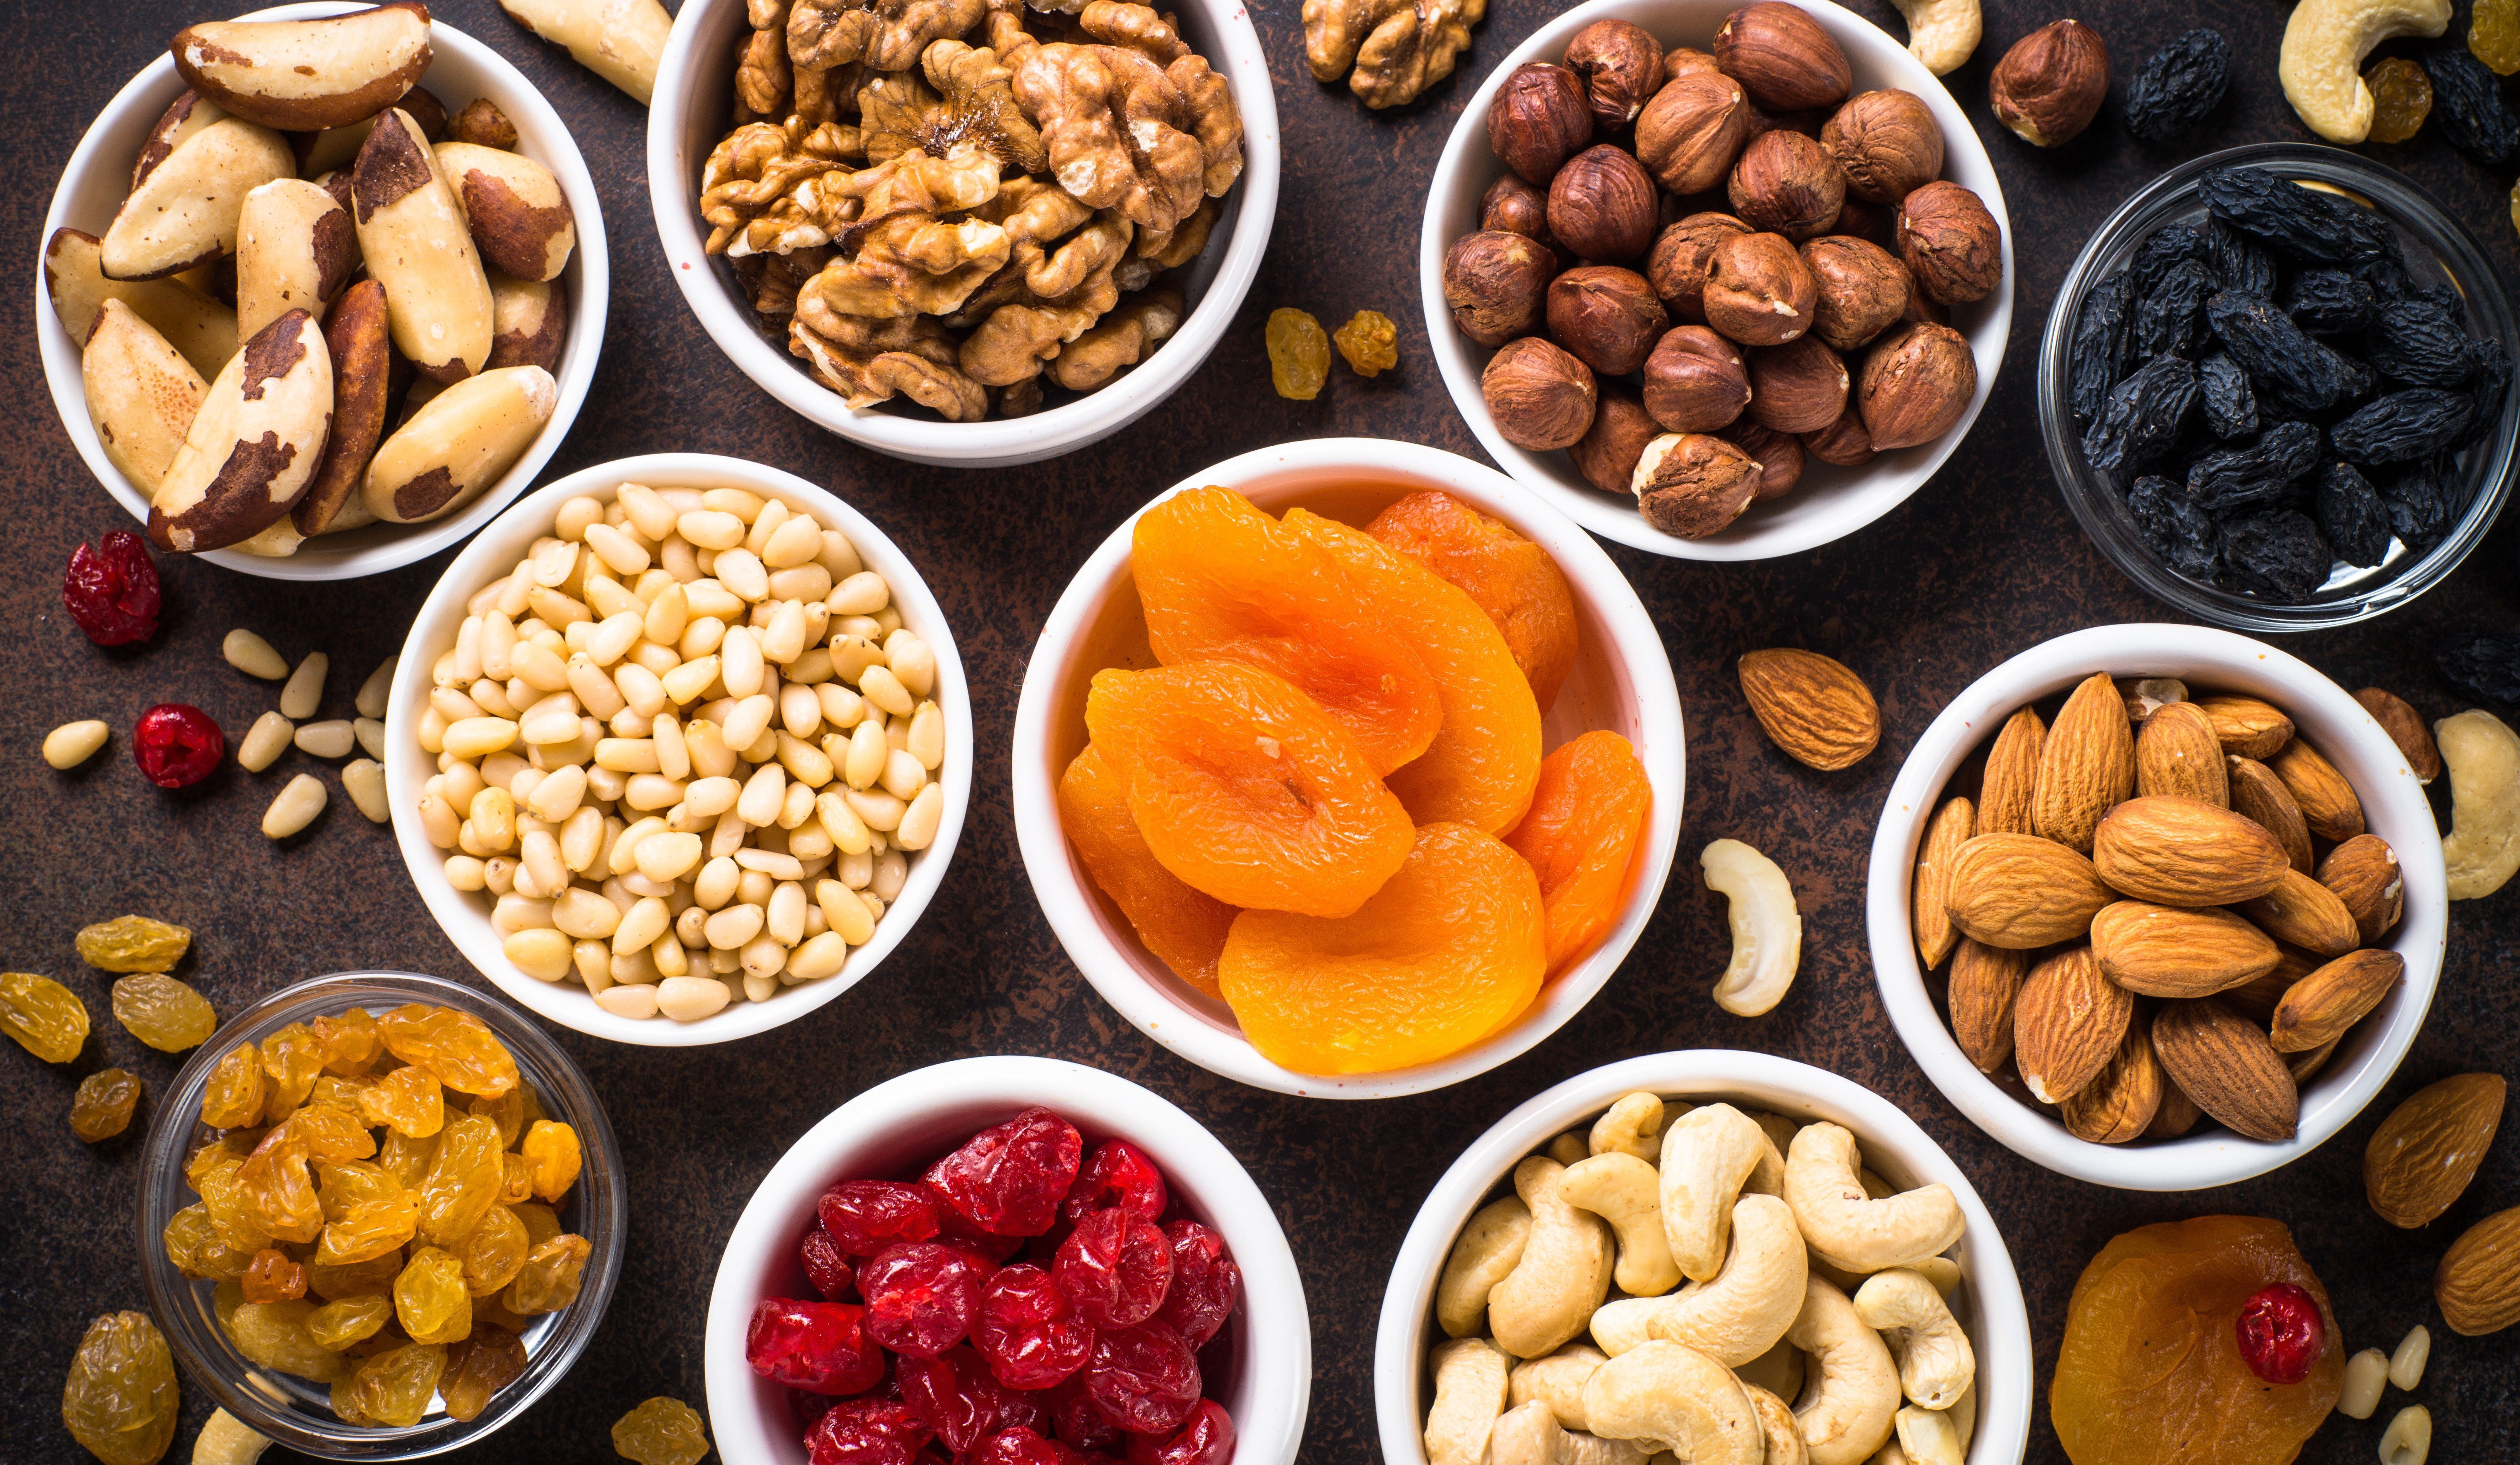 Common Myths About Nuts and Dried Fruits